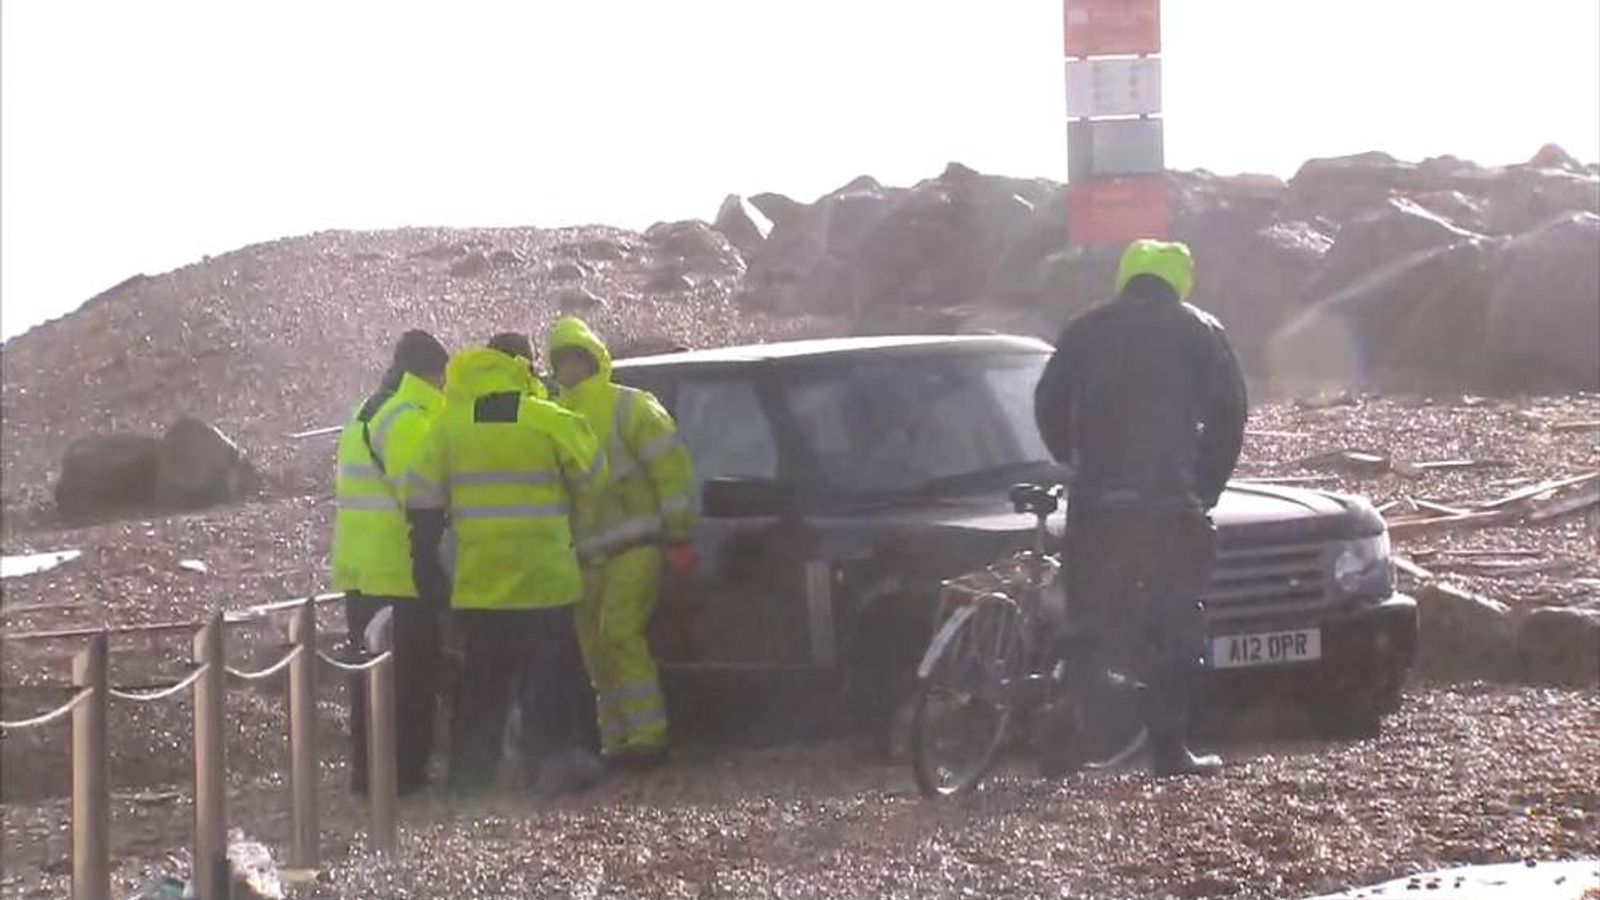 A car stranded in shingle in Milford-on-Sea, Hampshire